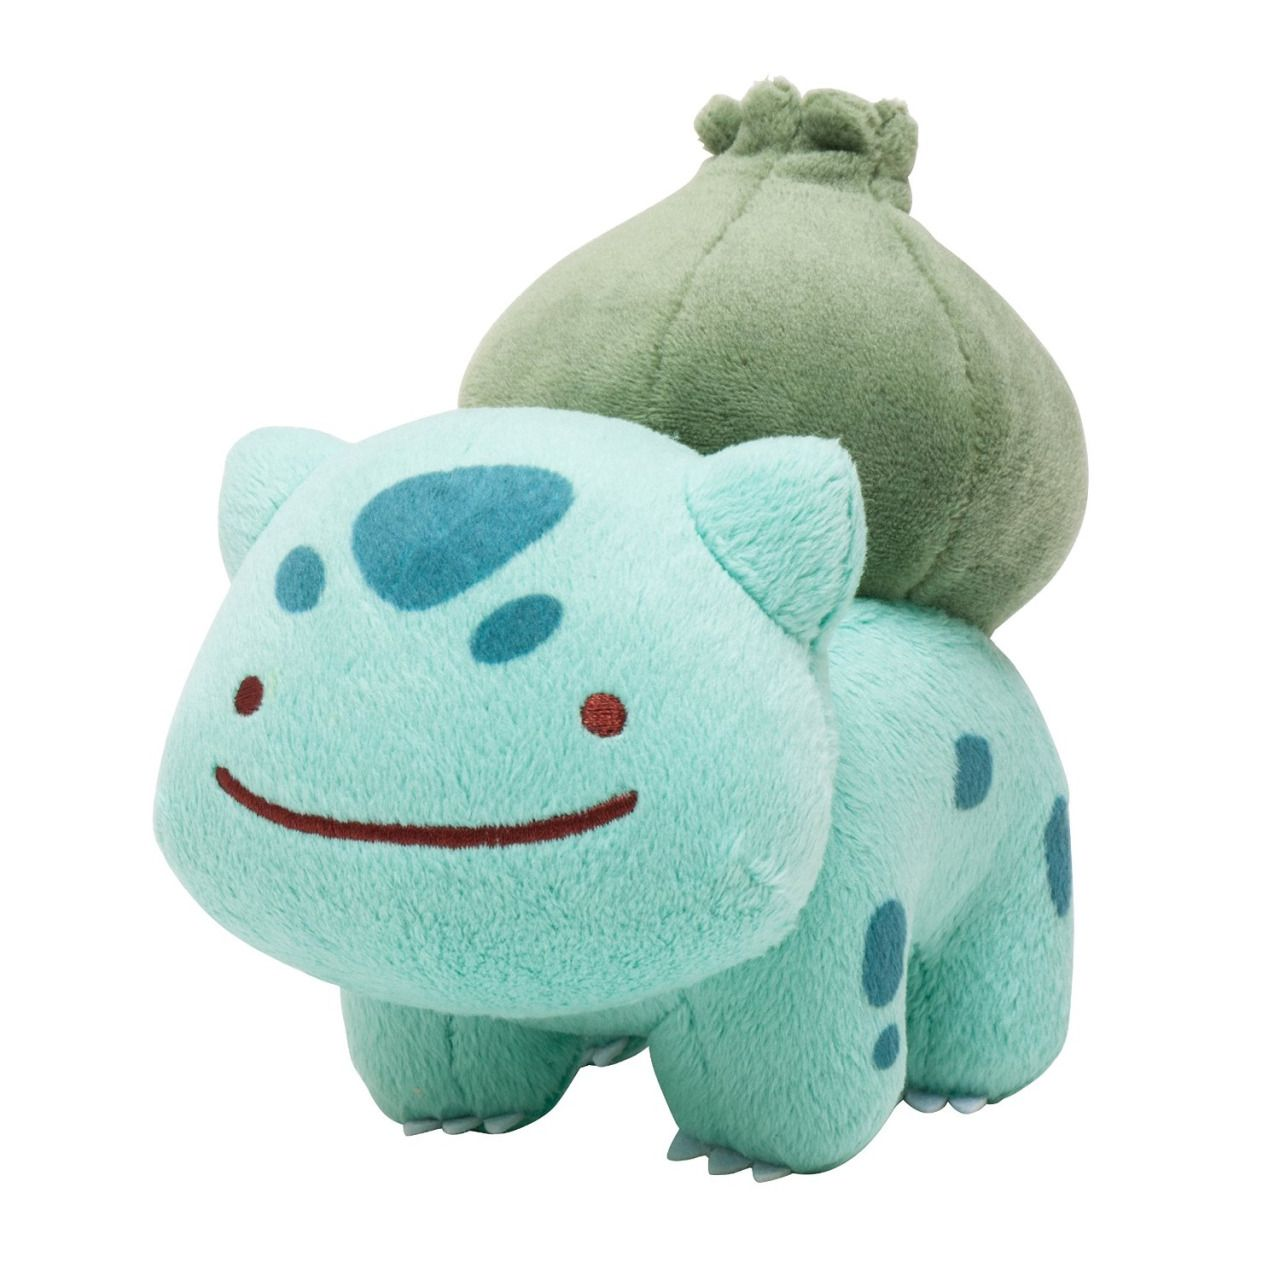 Voretiger This Will Protect Us Pokemon Plush Cute Stuffed Animals Cute Plush